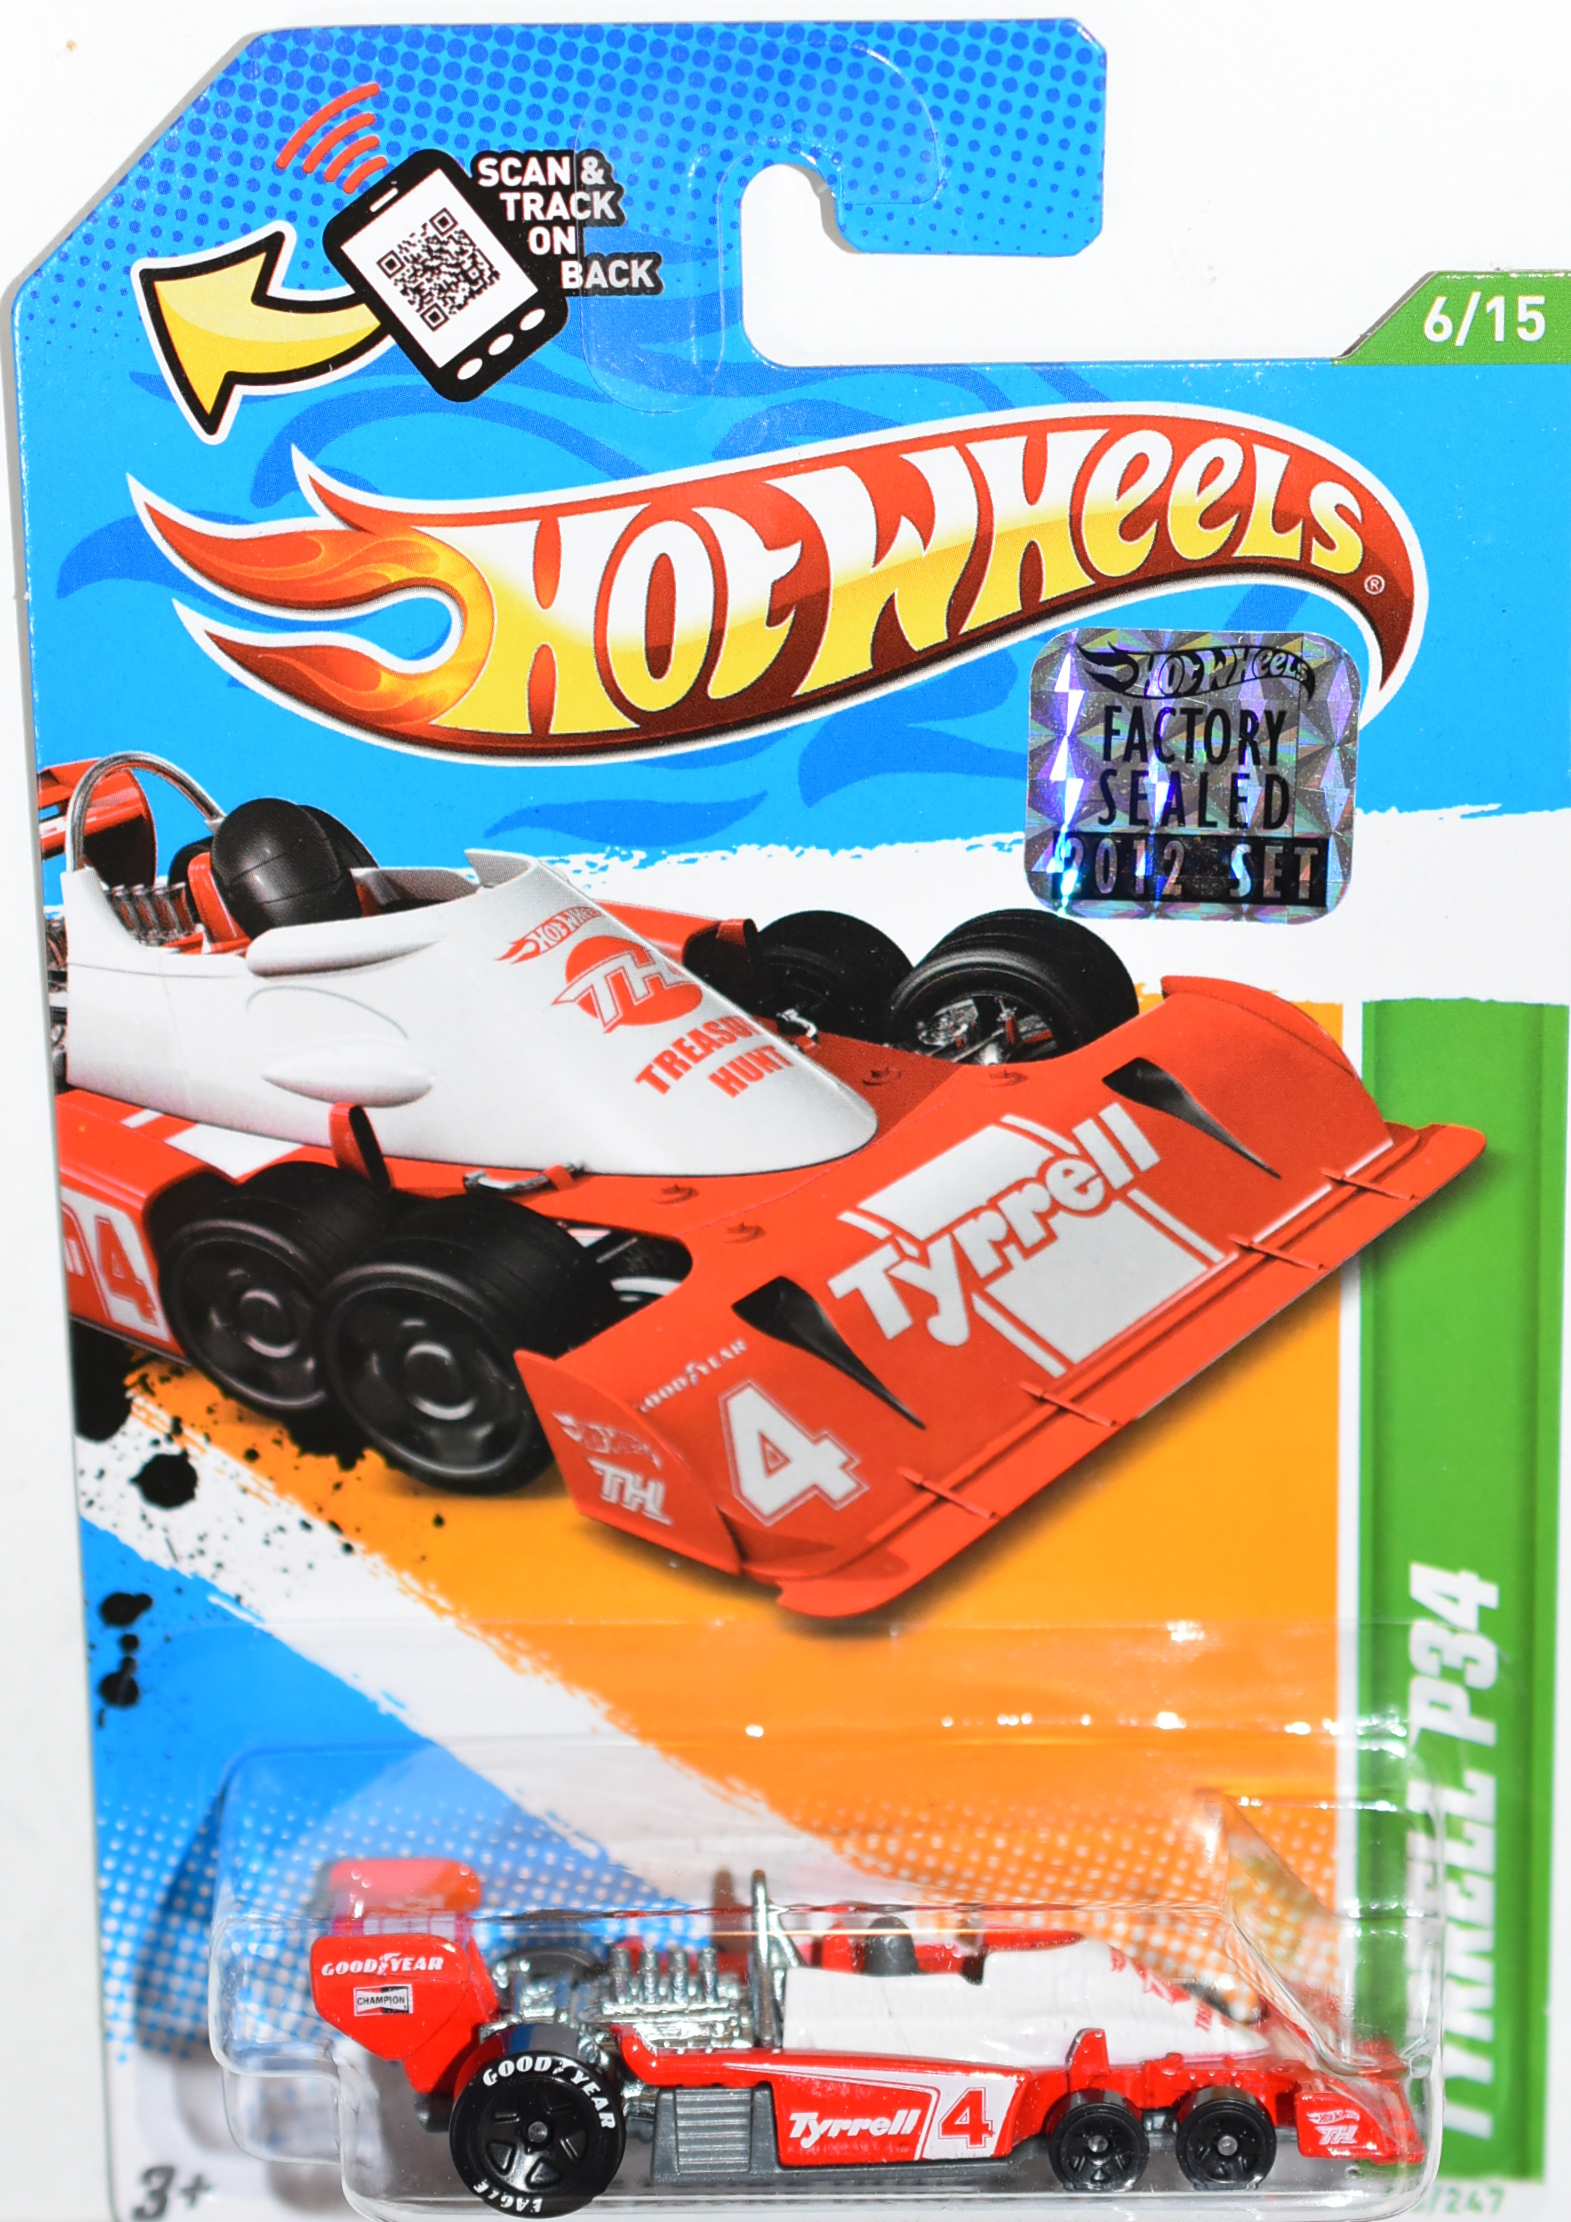 HOT WHEELS 2012 TYRRELL P34 REGULAR TREASURE HUNT FACTORY SEALED